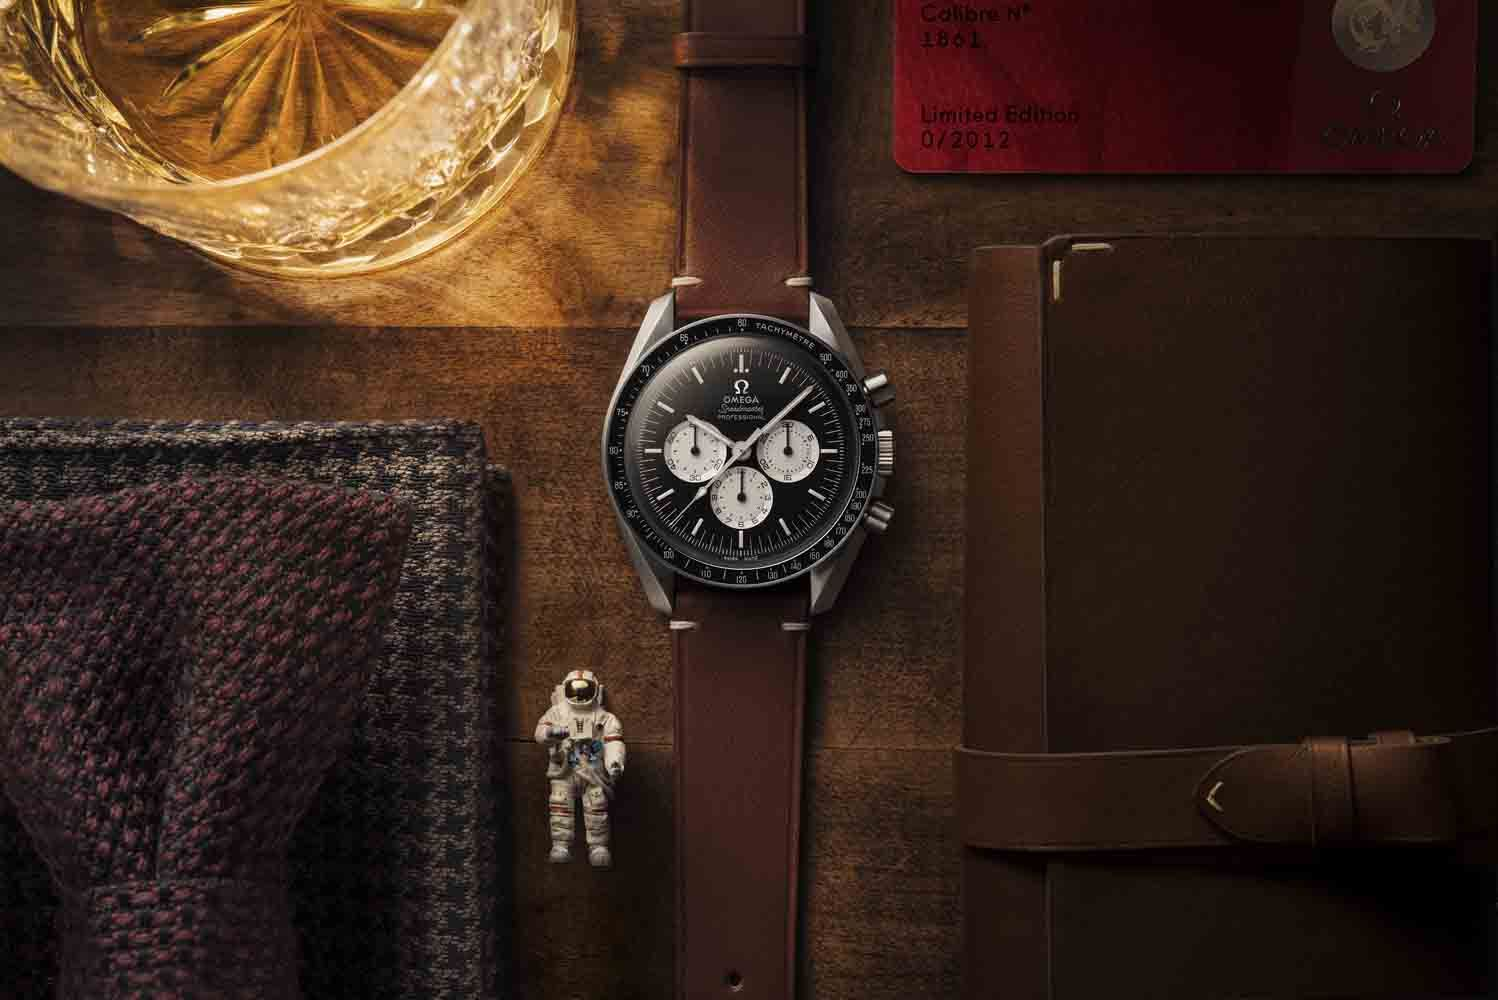 Omega's First Venture Into E-Commerce: A Limited Edition Speedmaster Every Tuesday